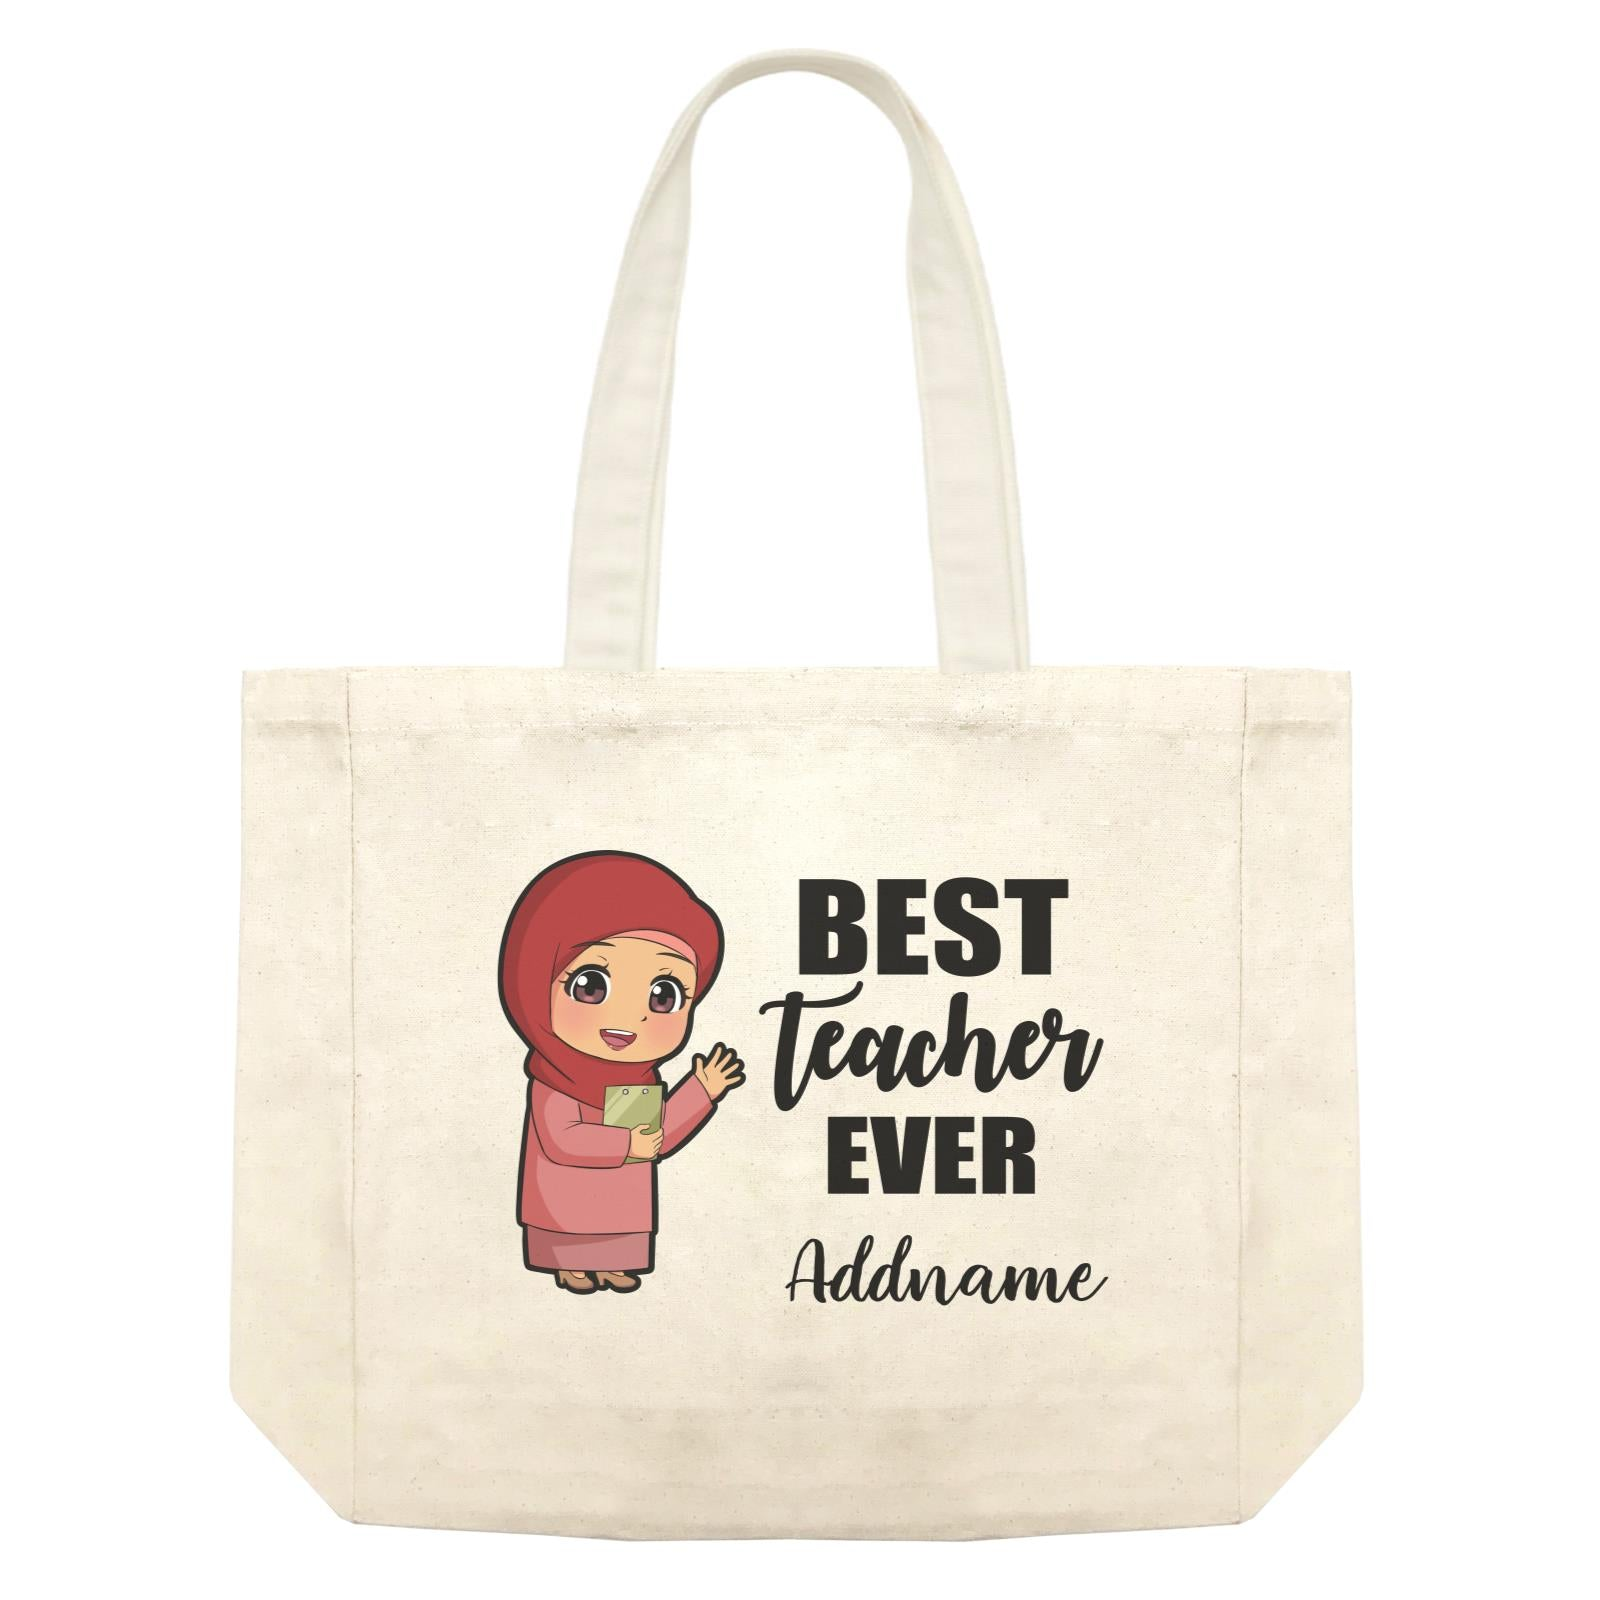 Chibi Teachers Malay Woman Best Teacher Ever Addname Shopping Bag